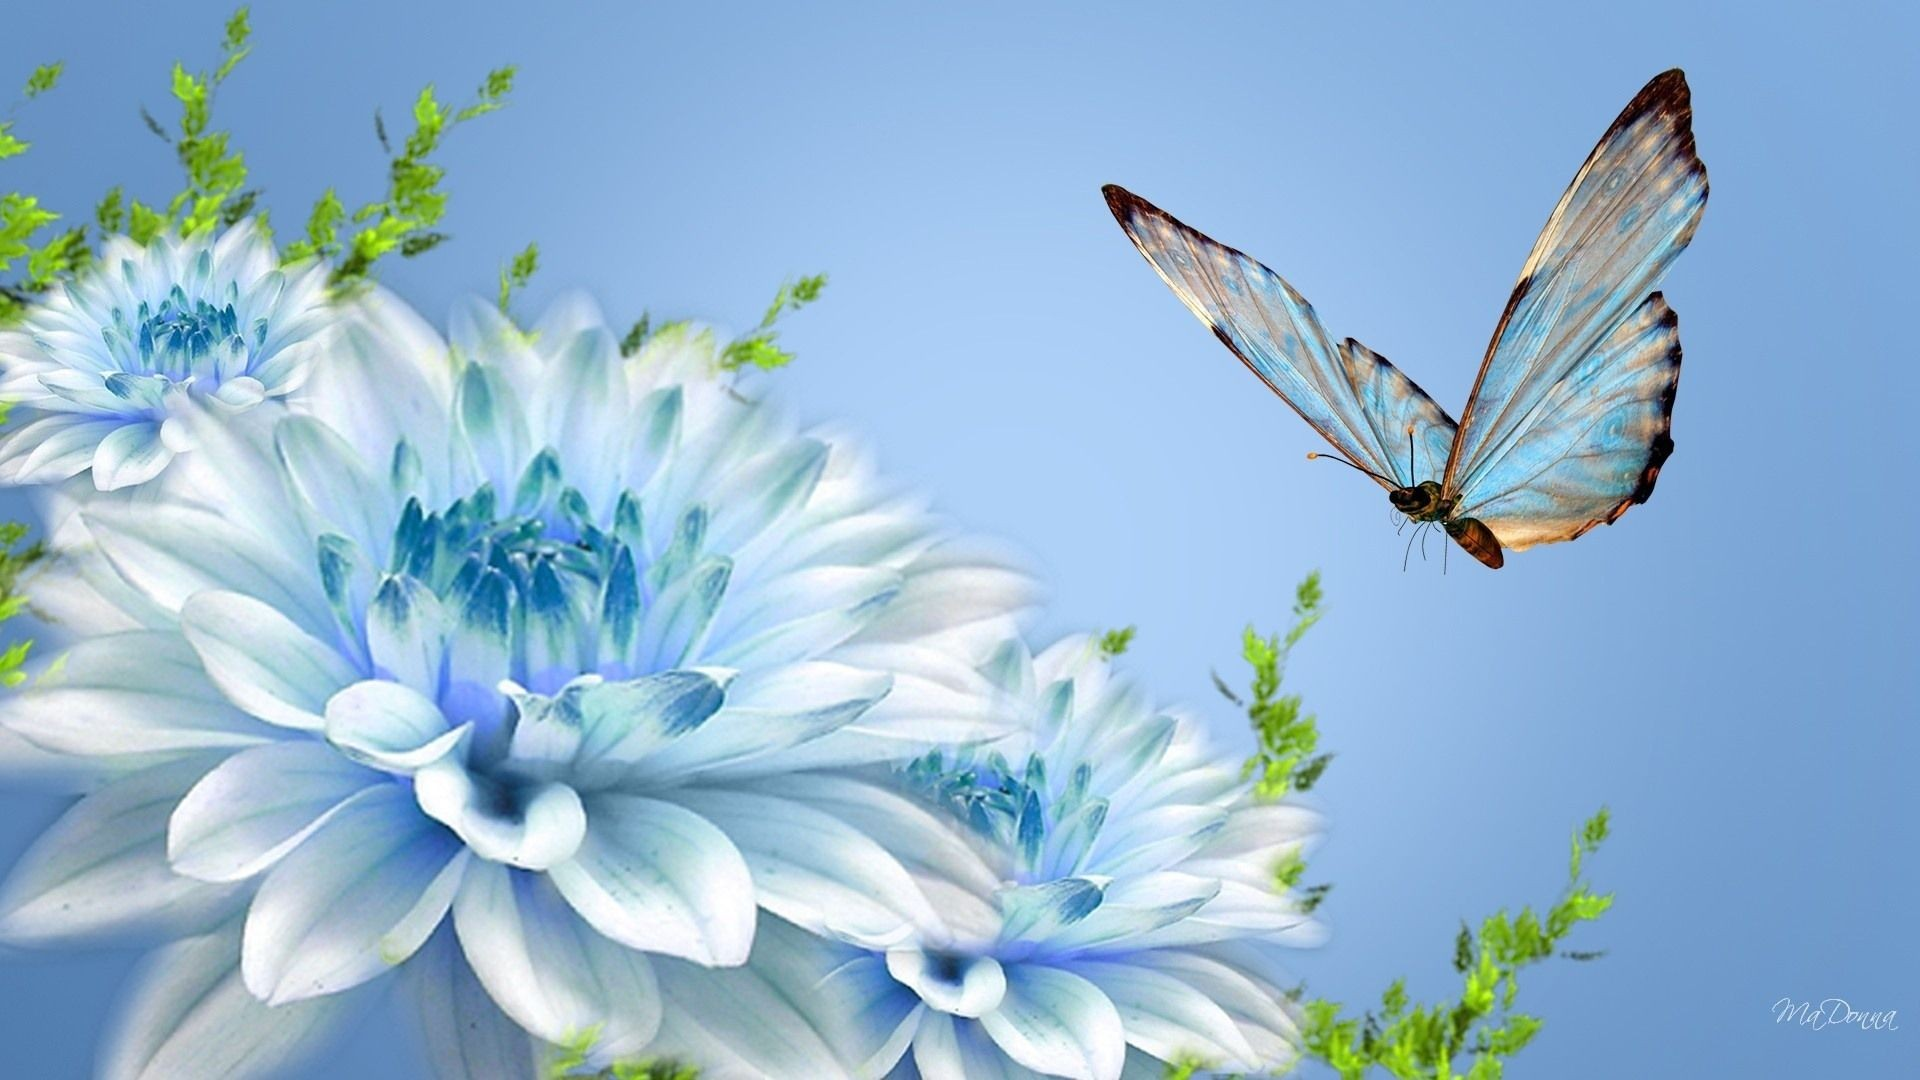 Butterfly wallpaper ·① Download free beautiful full HD wallpapers for desktop, mobile, laptop in